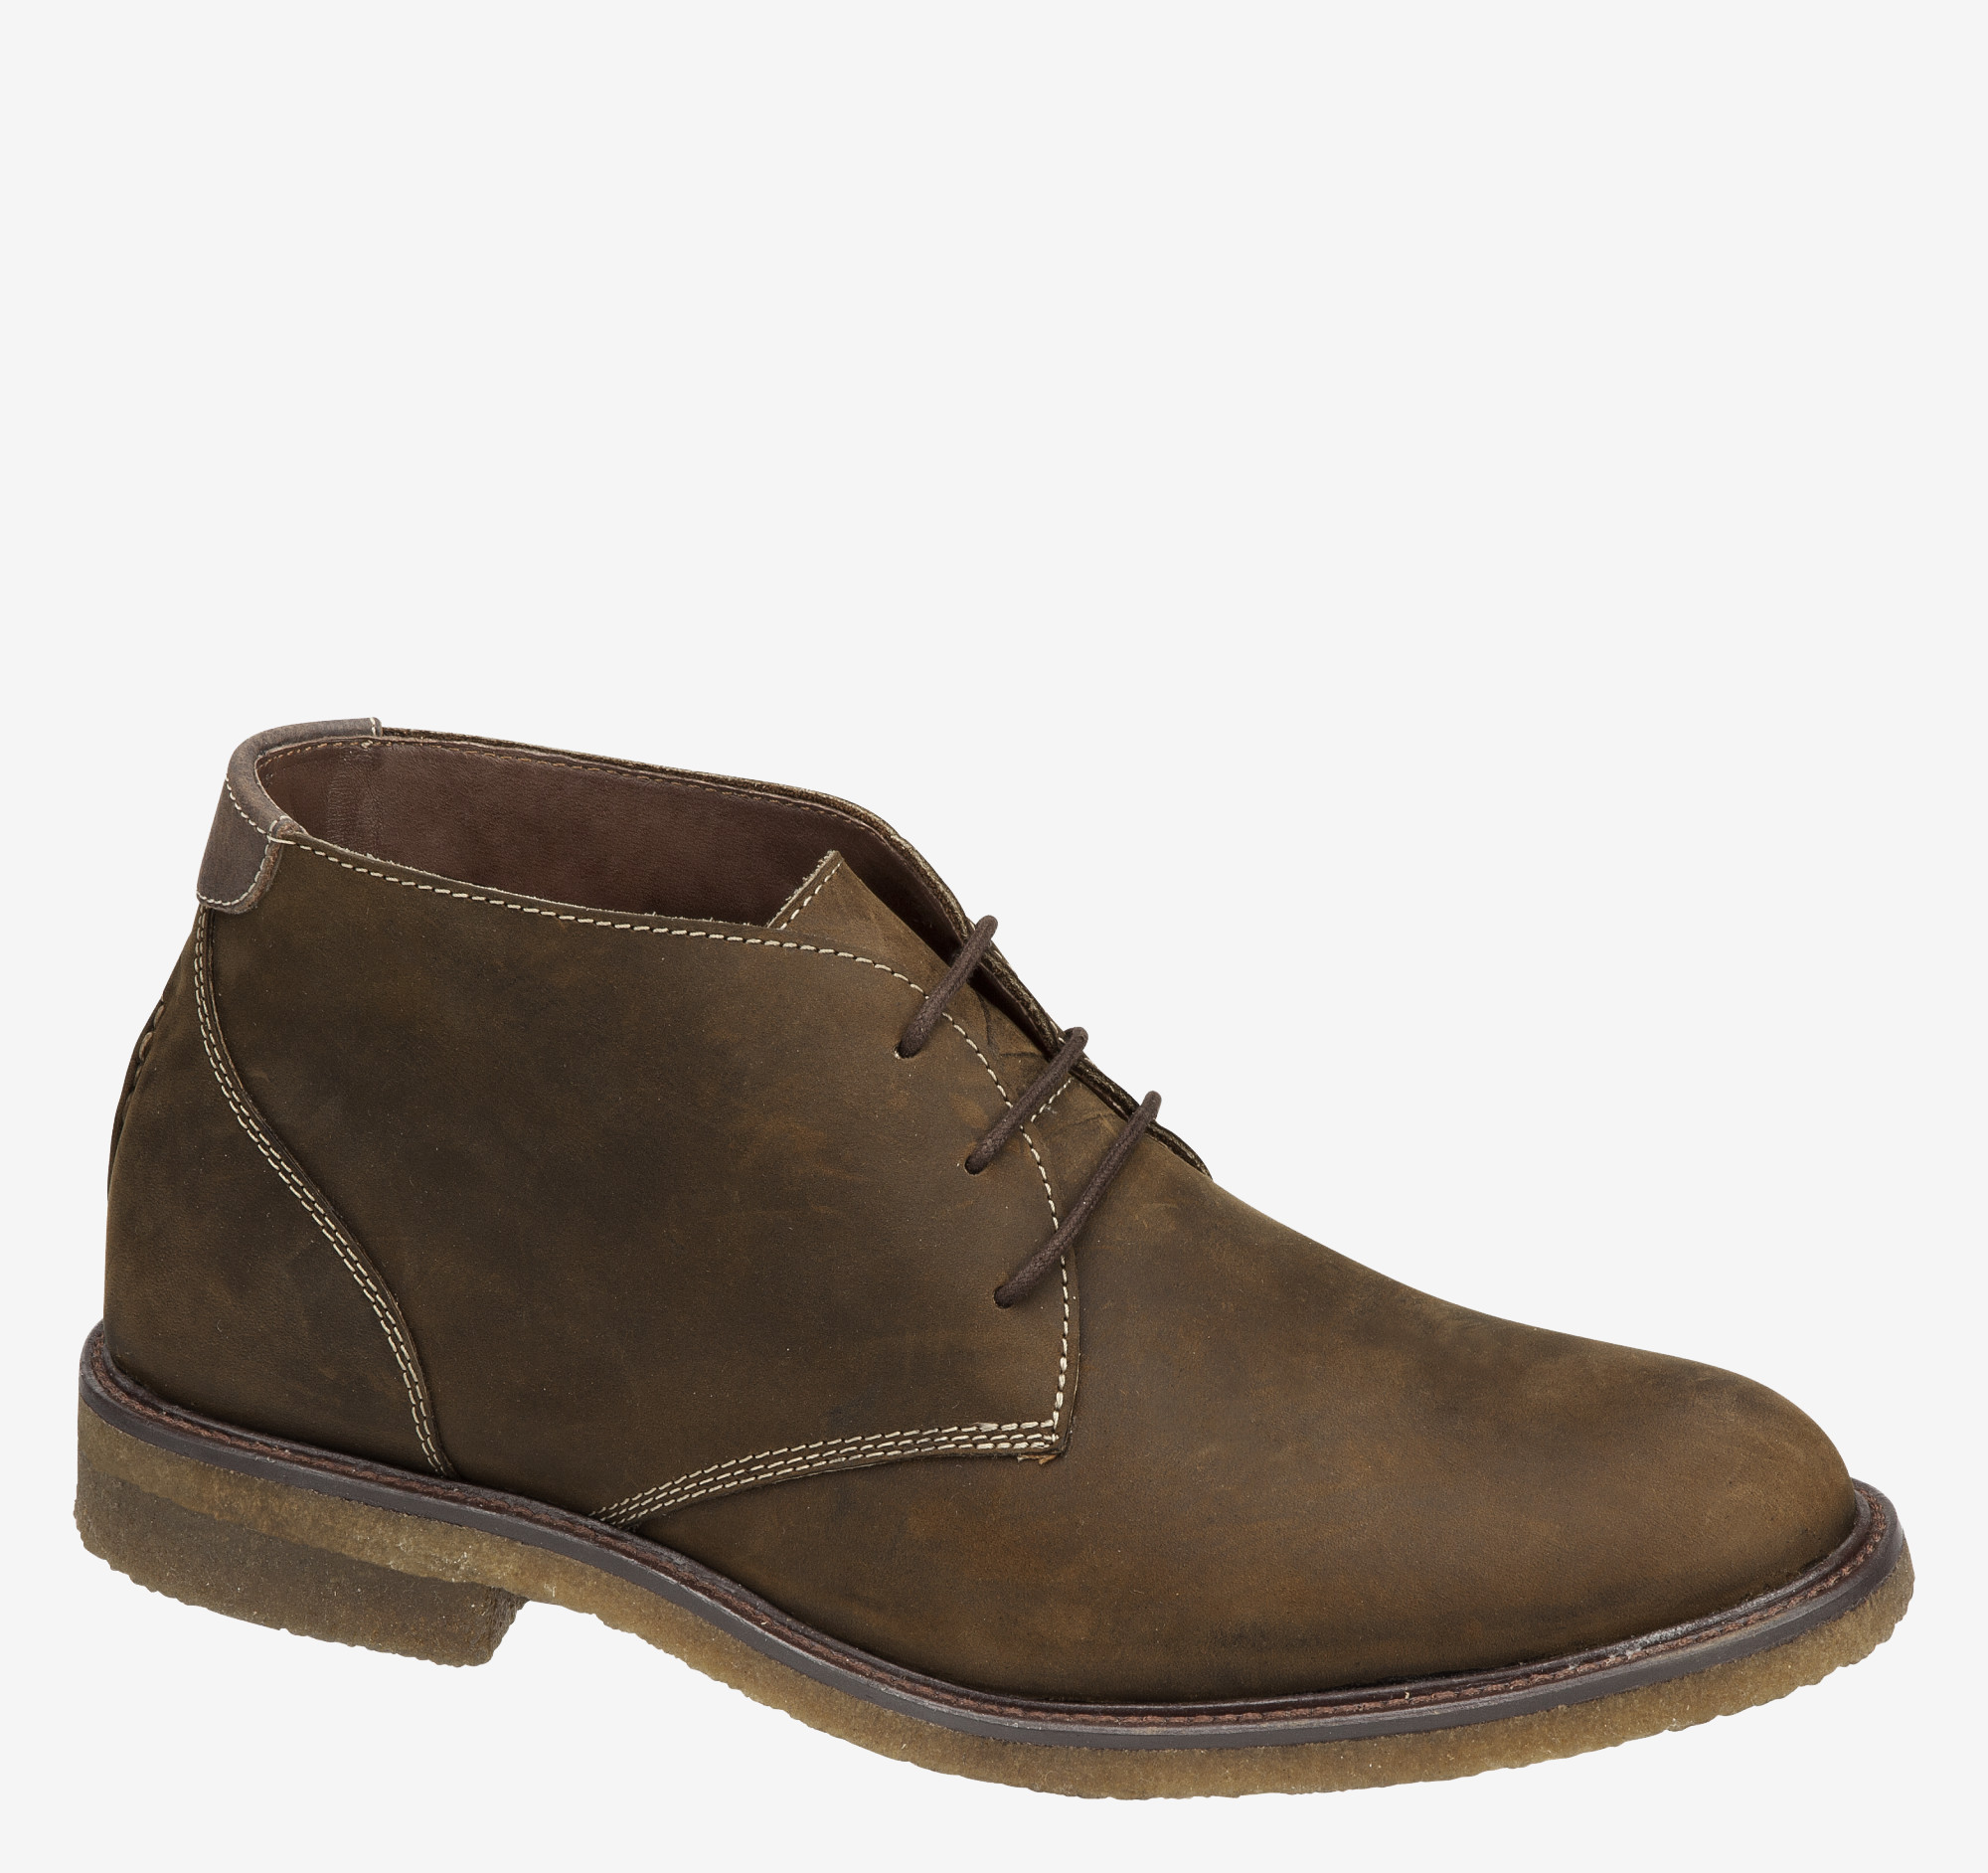 Free shipping on men's boots at adoption-funds.ml Shop for chukka, vintage, weather-ready and more. Totally free shipping and returns.